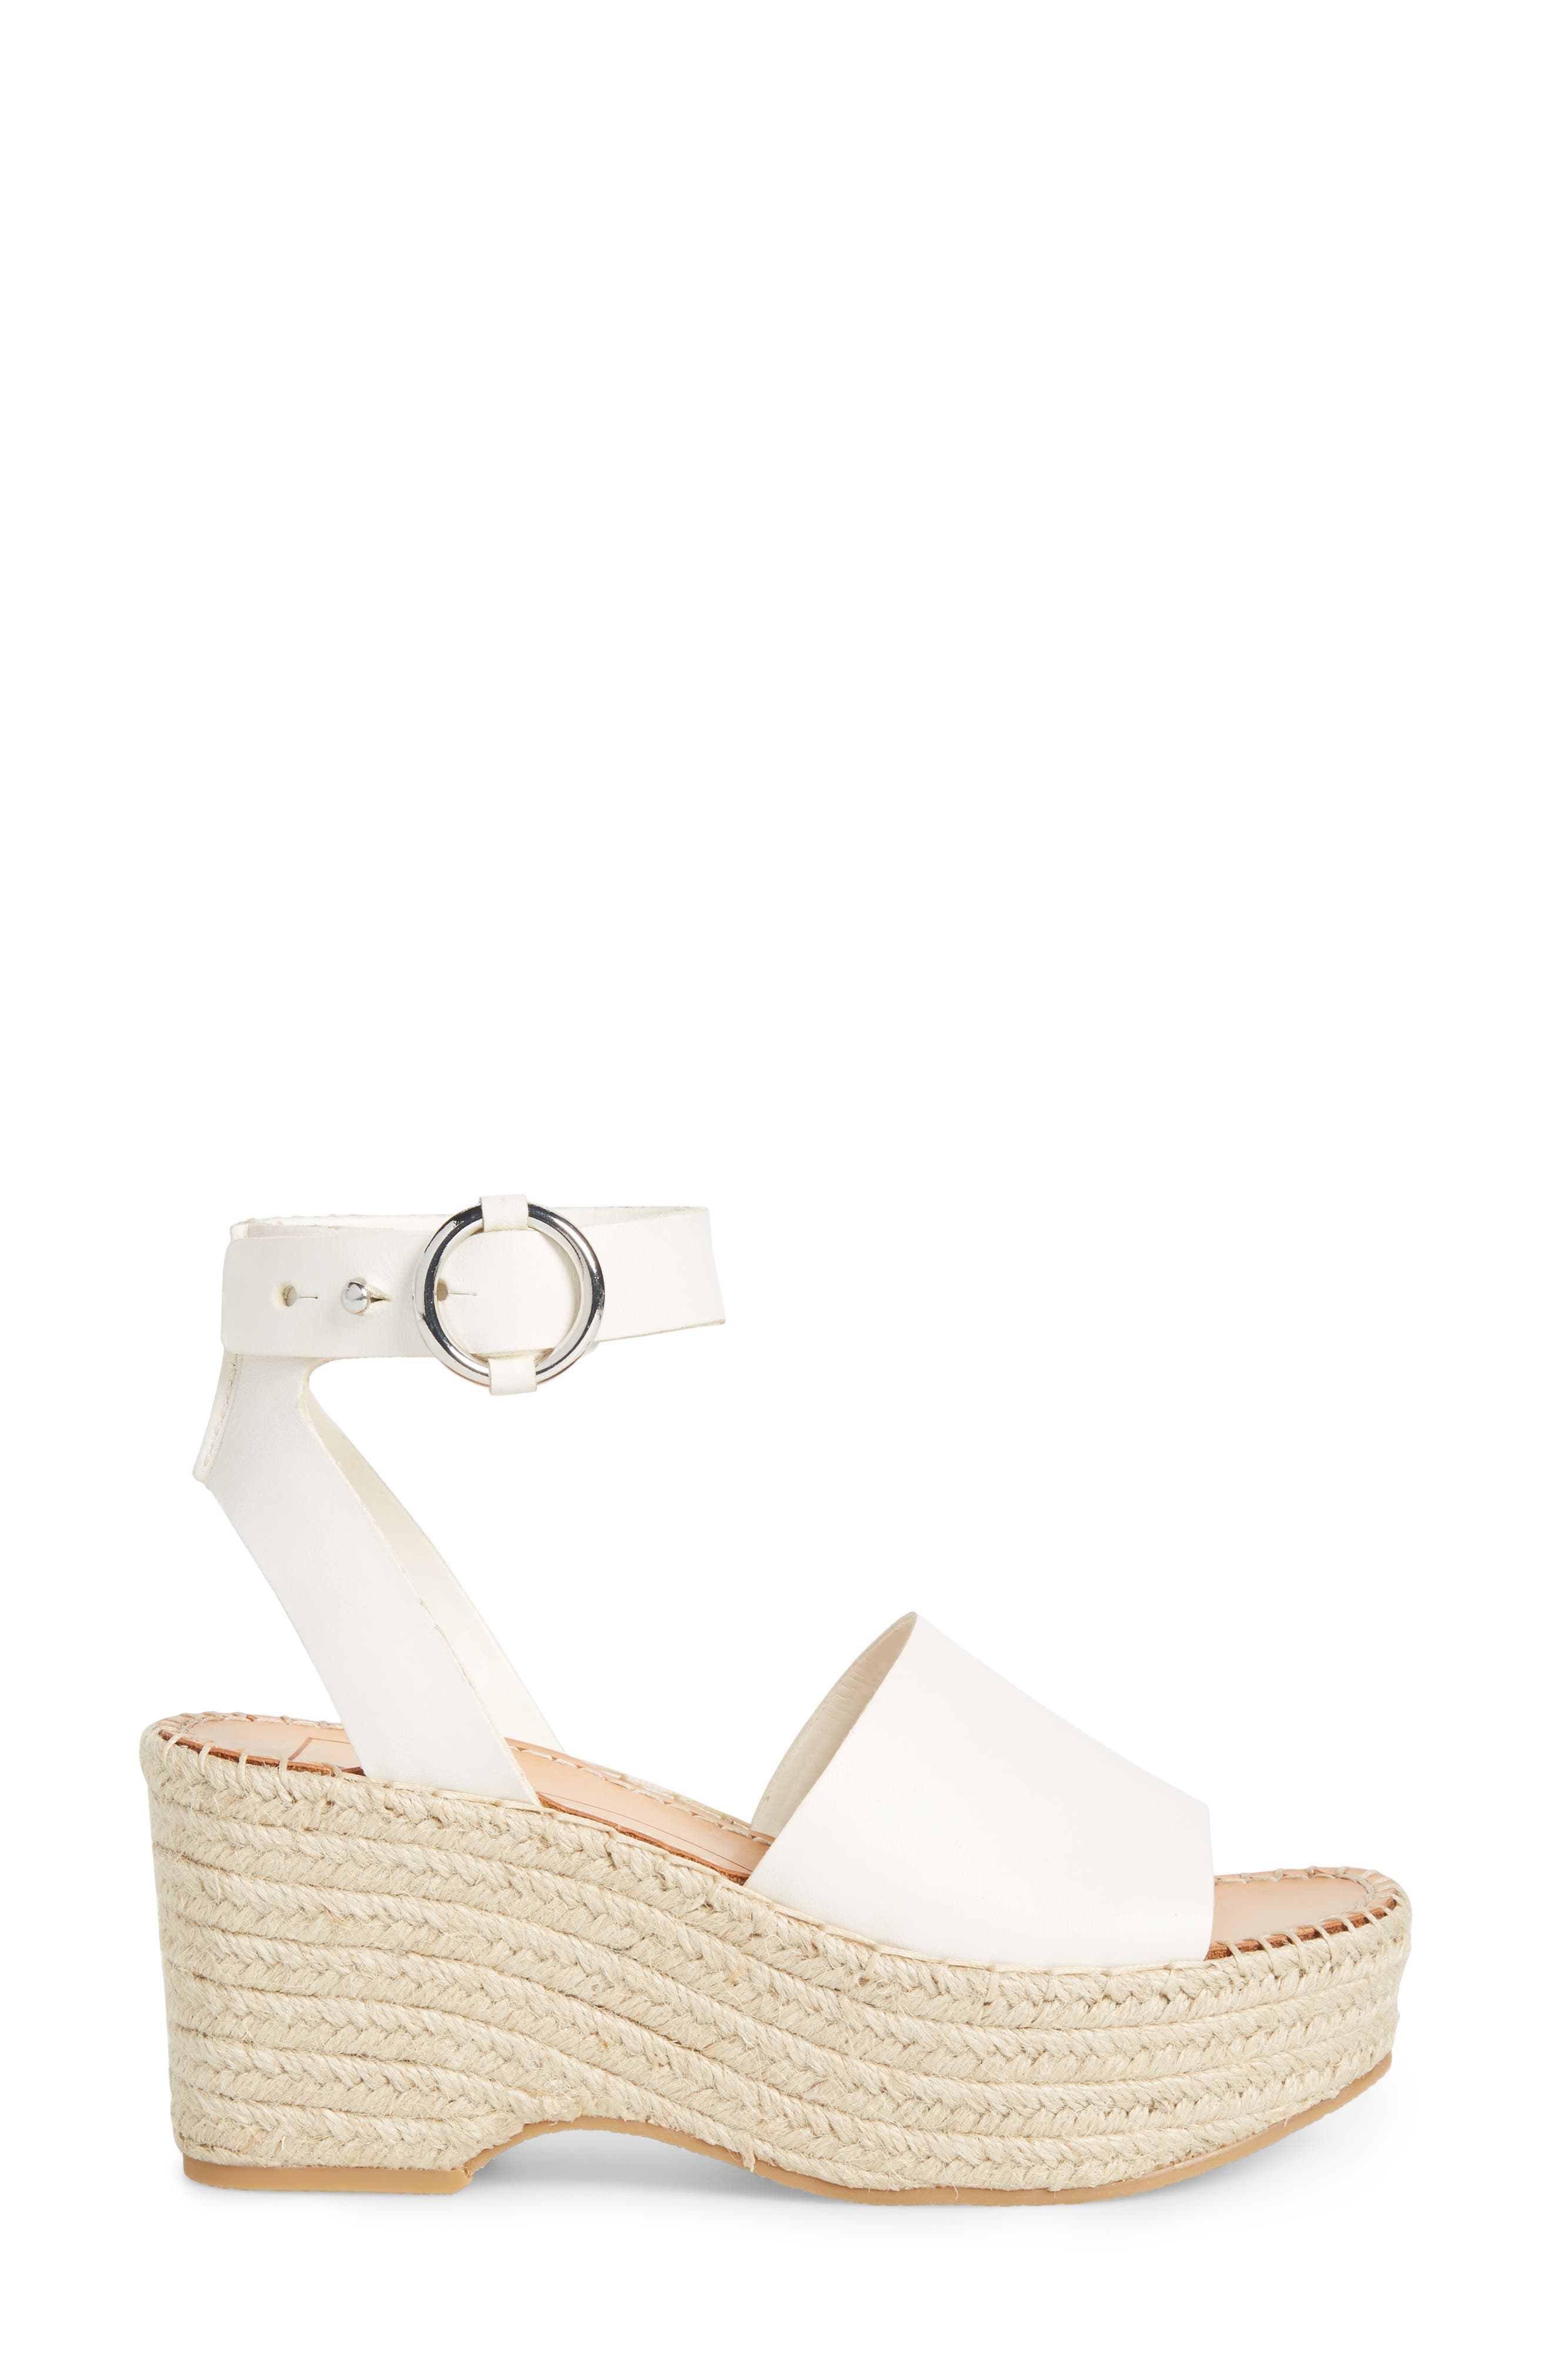 DOLCE VITA, Lesly Espadrille Platform Sandal, Alternate thumbnail 3, color, OFF WHITE